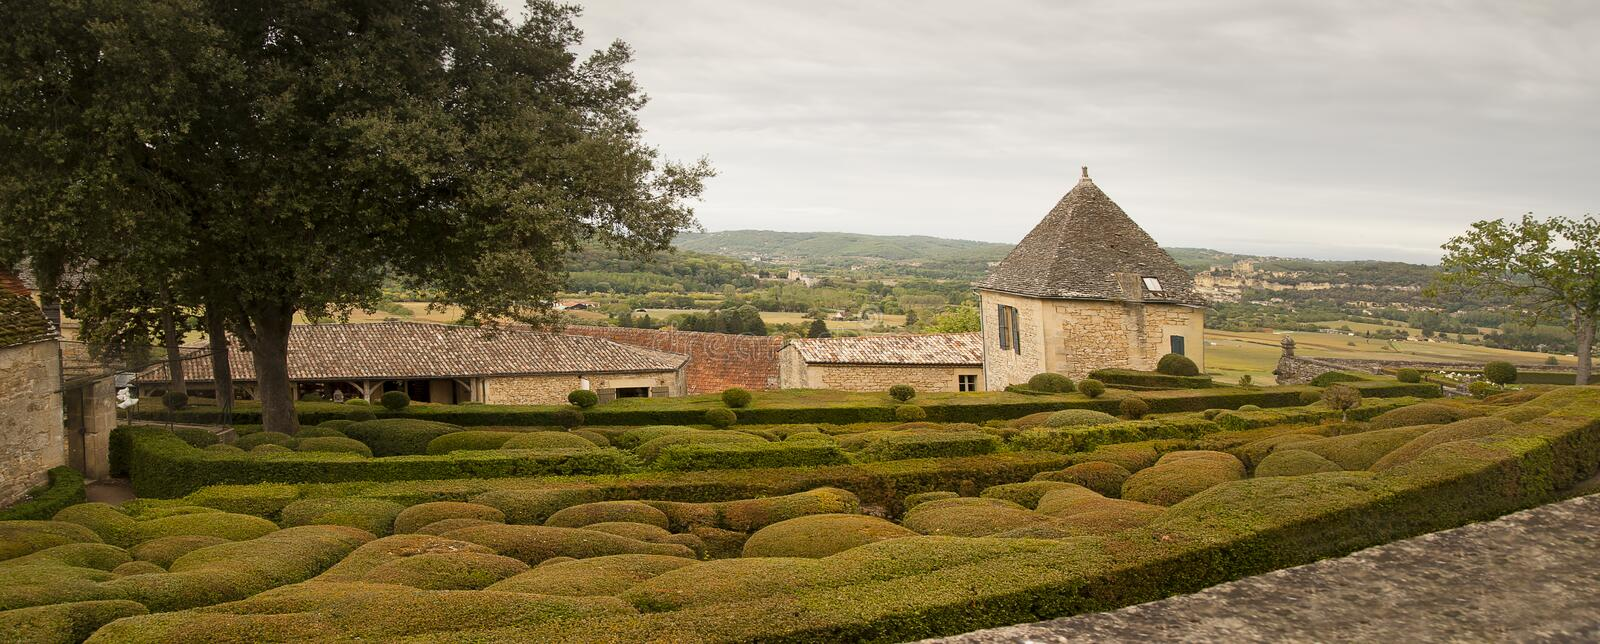 Le Jardin Marqueyssac France royalty free stock photography